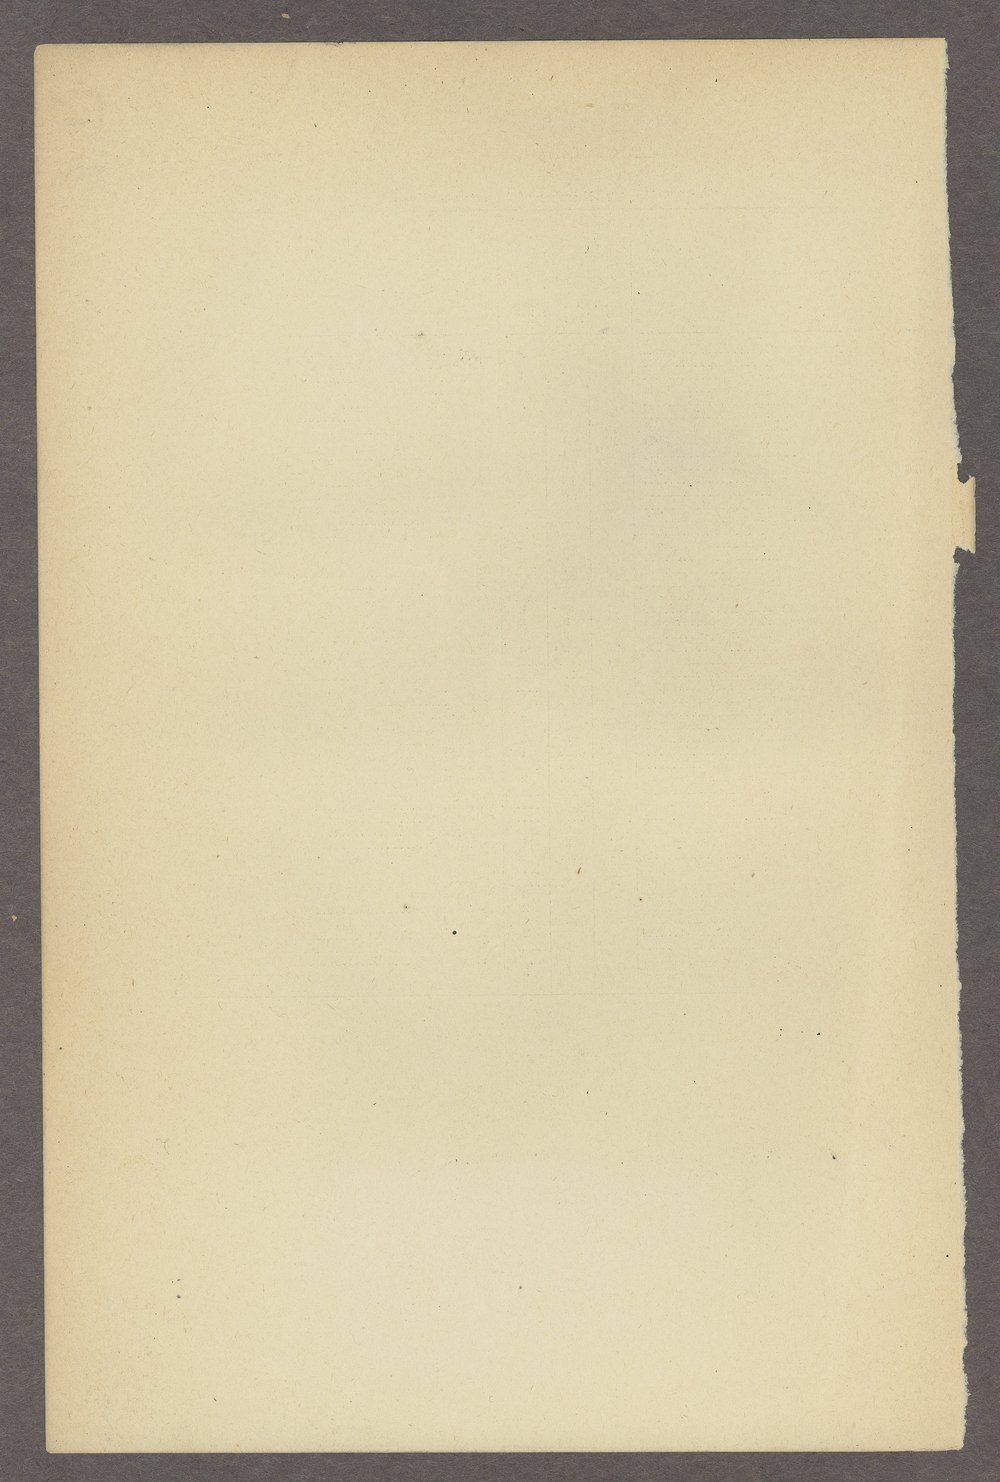 Biennial report of the State Reform School,1898 - 12